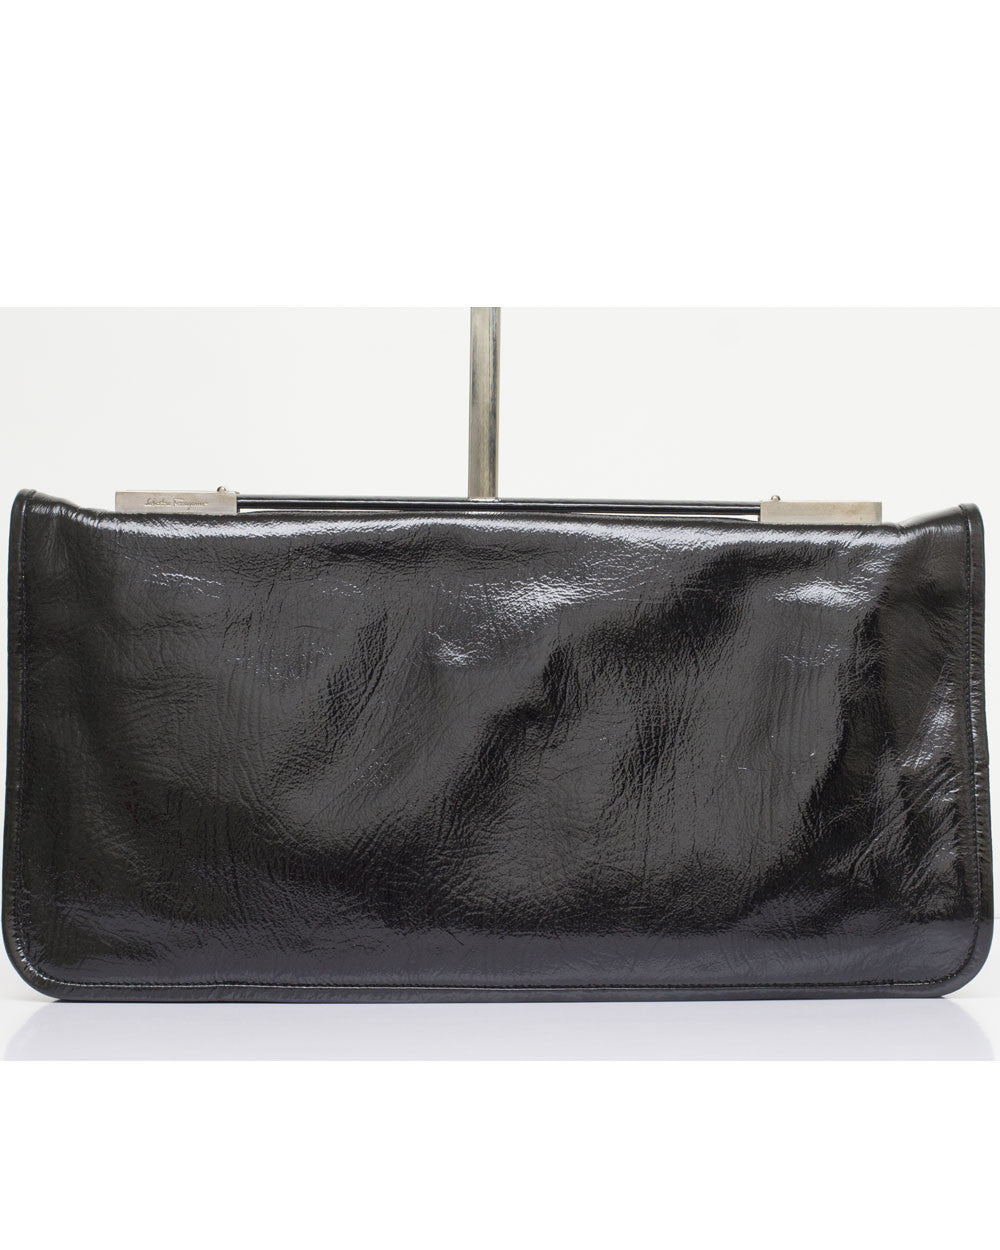 Black Patent Oversized Clutch Bag